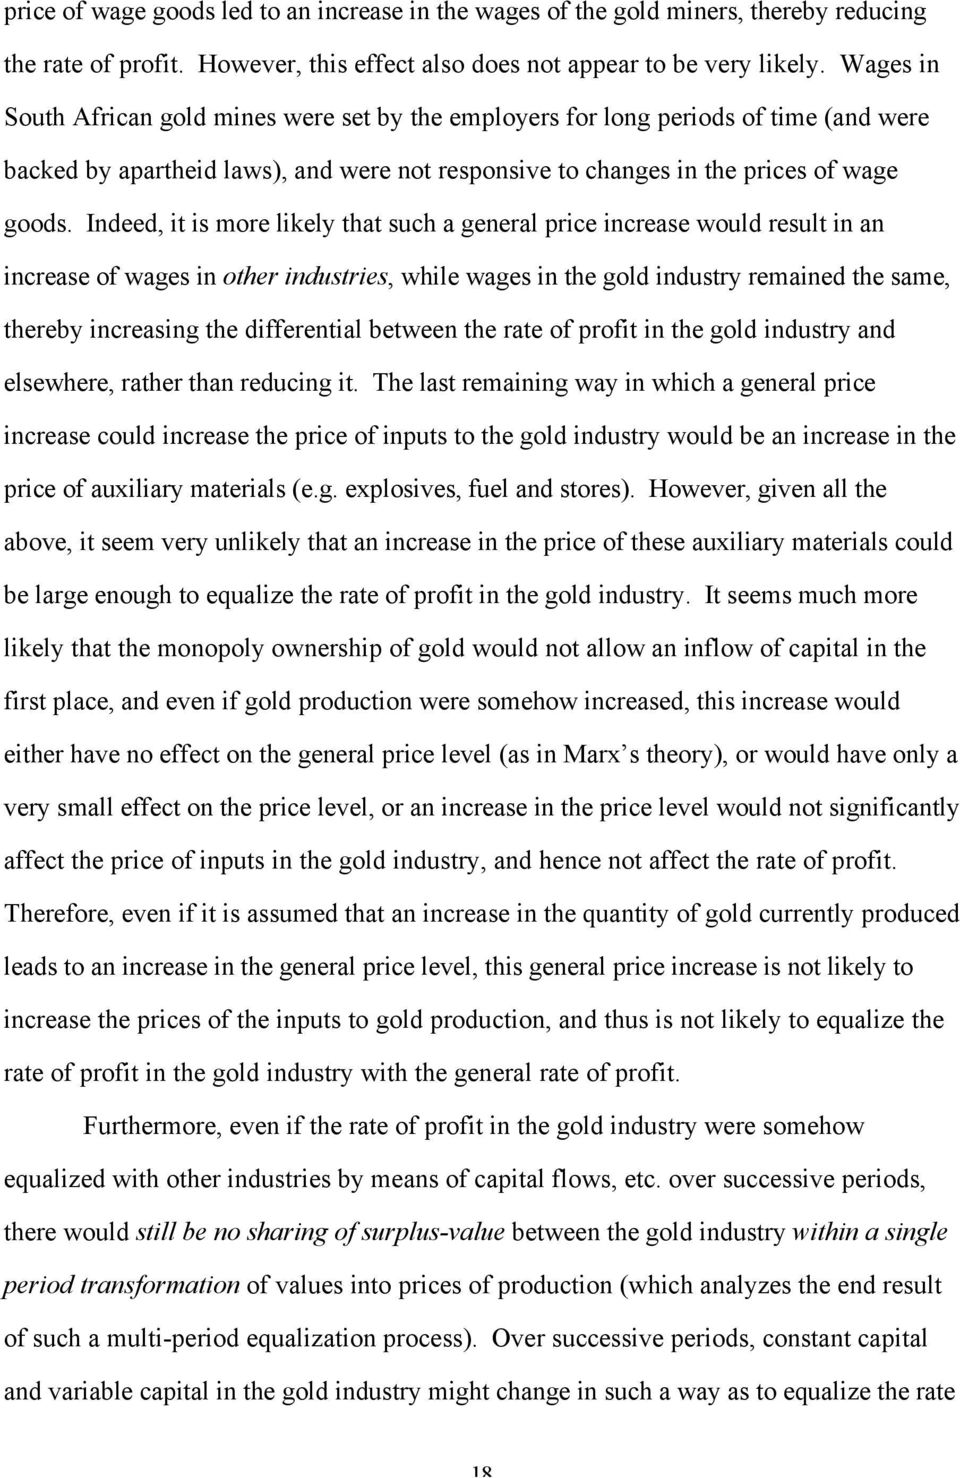 Indeed, it is more likely that such a general price increase would result in an increase of wages in other industries, while wages in the gold industry remained the same, thereby increasing the